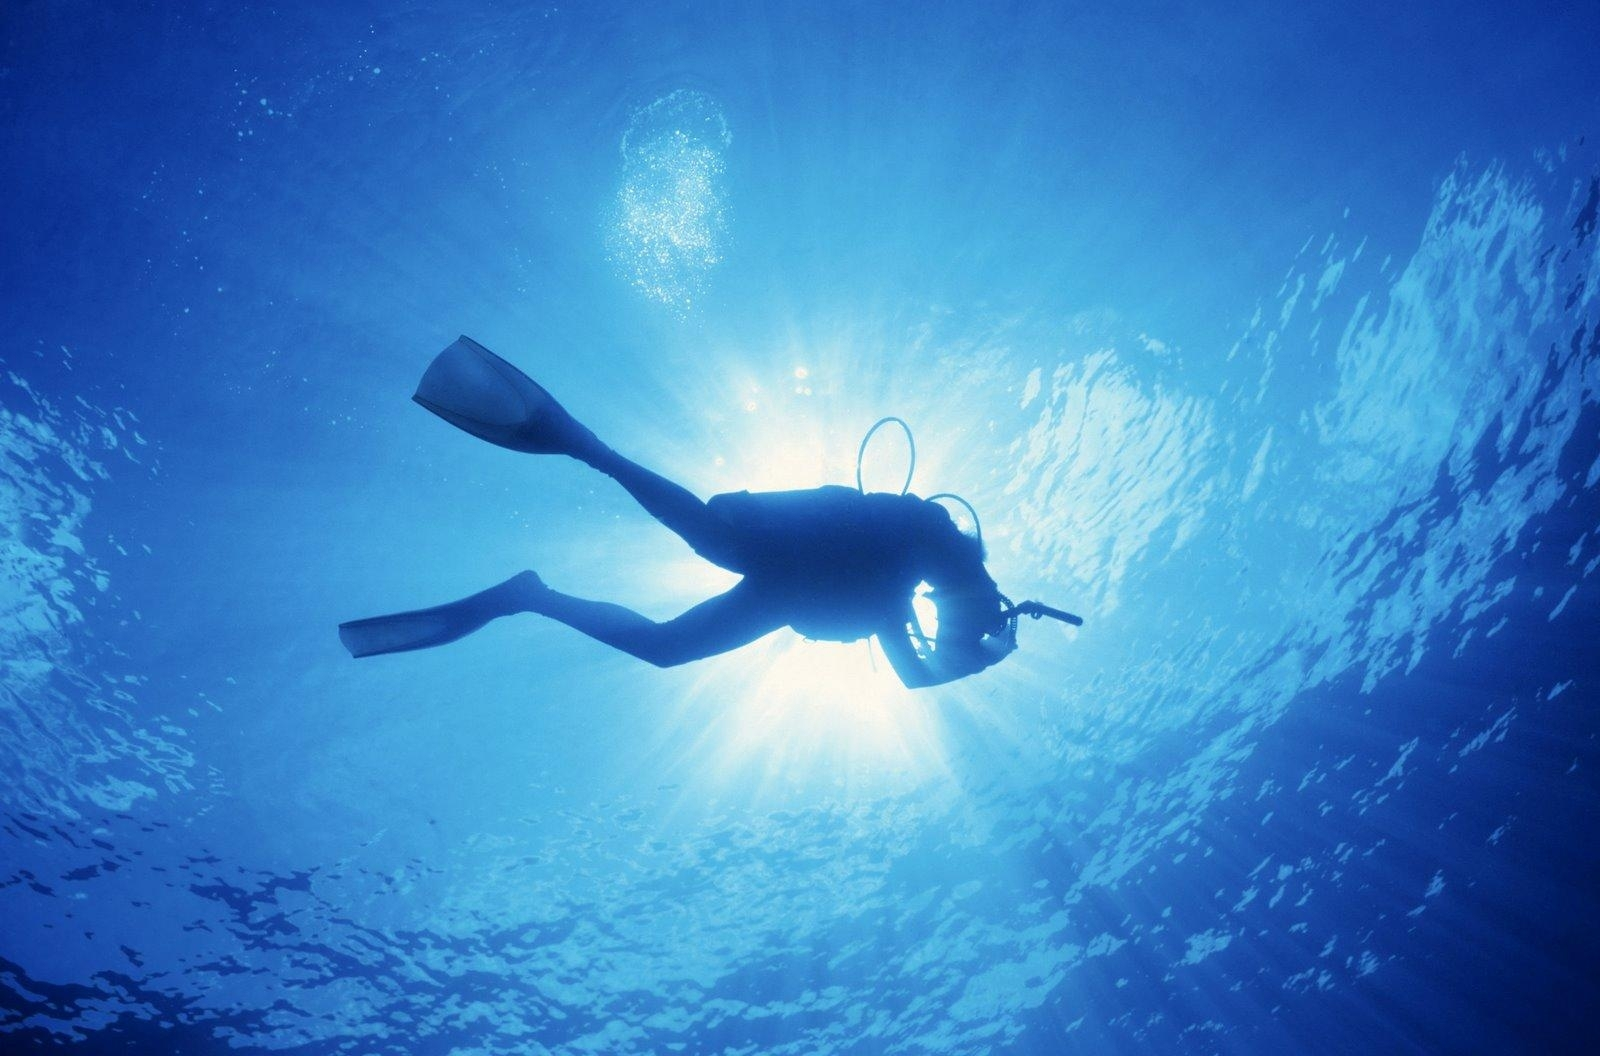 10 best scuba diving wallpaper high resolution full hd 1080p for pc